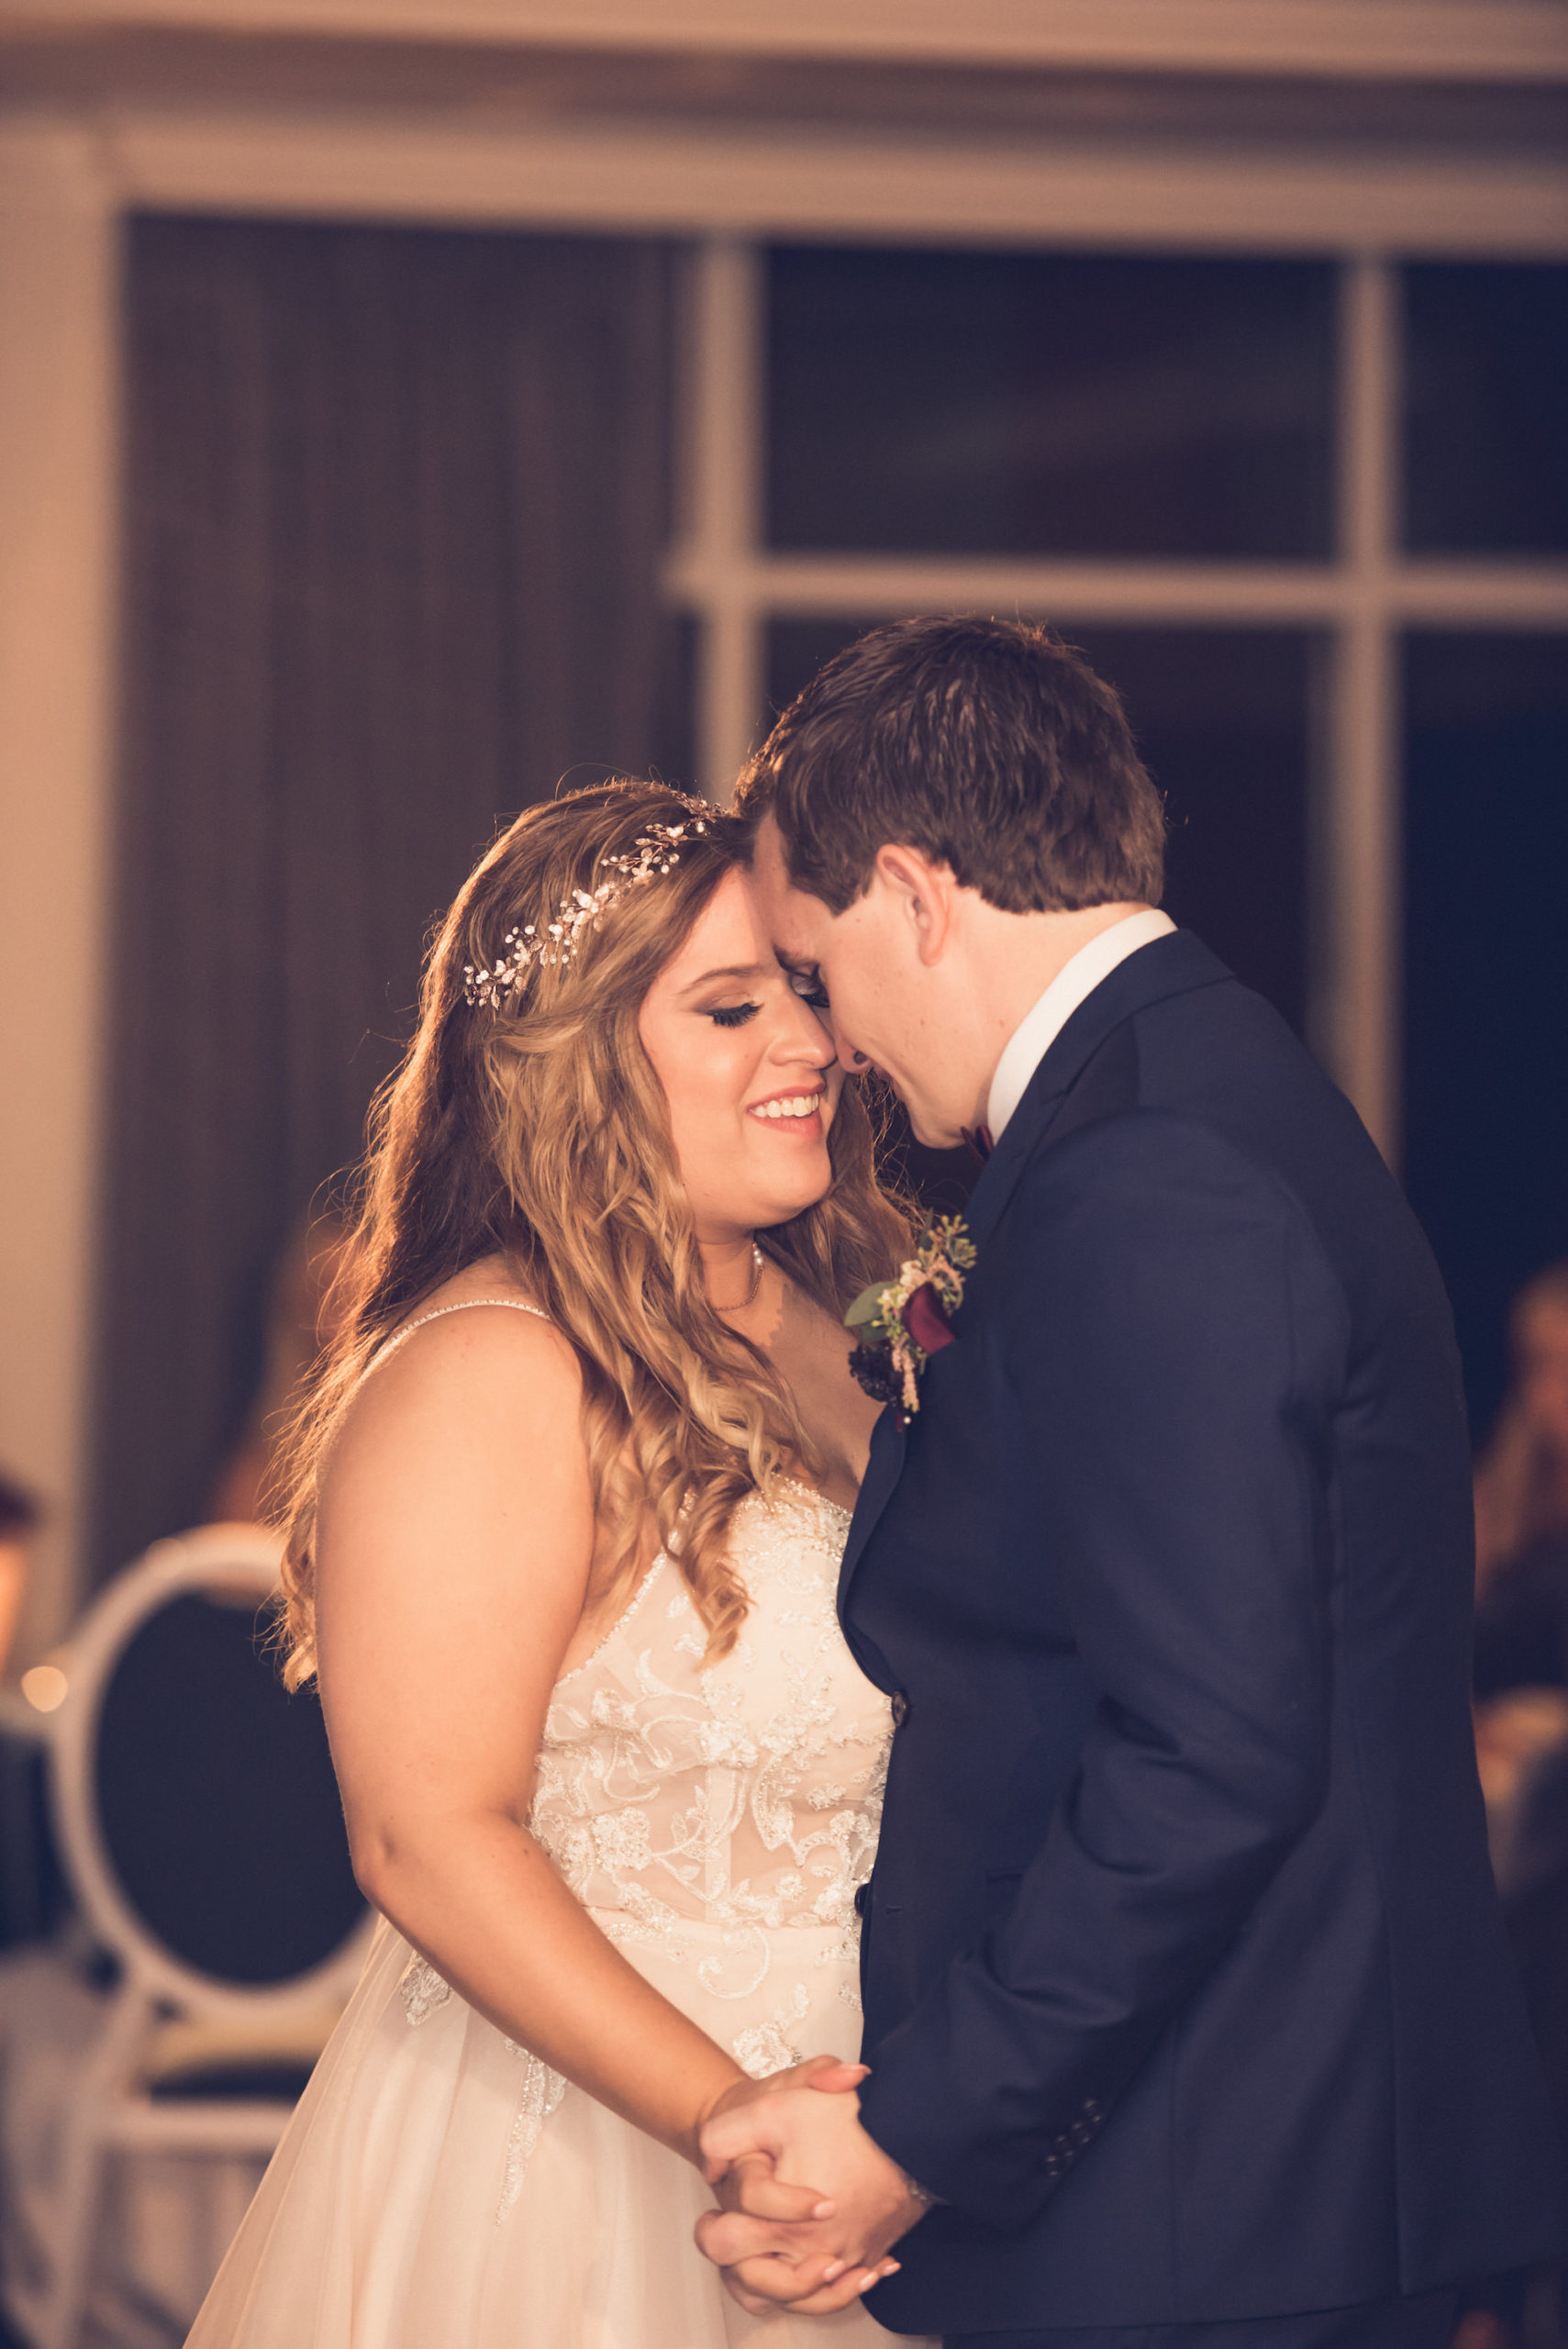 Romantic Bride and Groom First Dance Wedding Portrait | Wedding Photographer Luxe Light Images